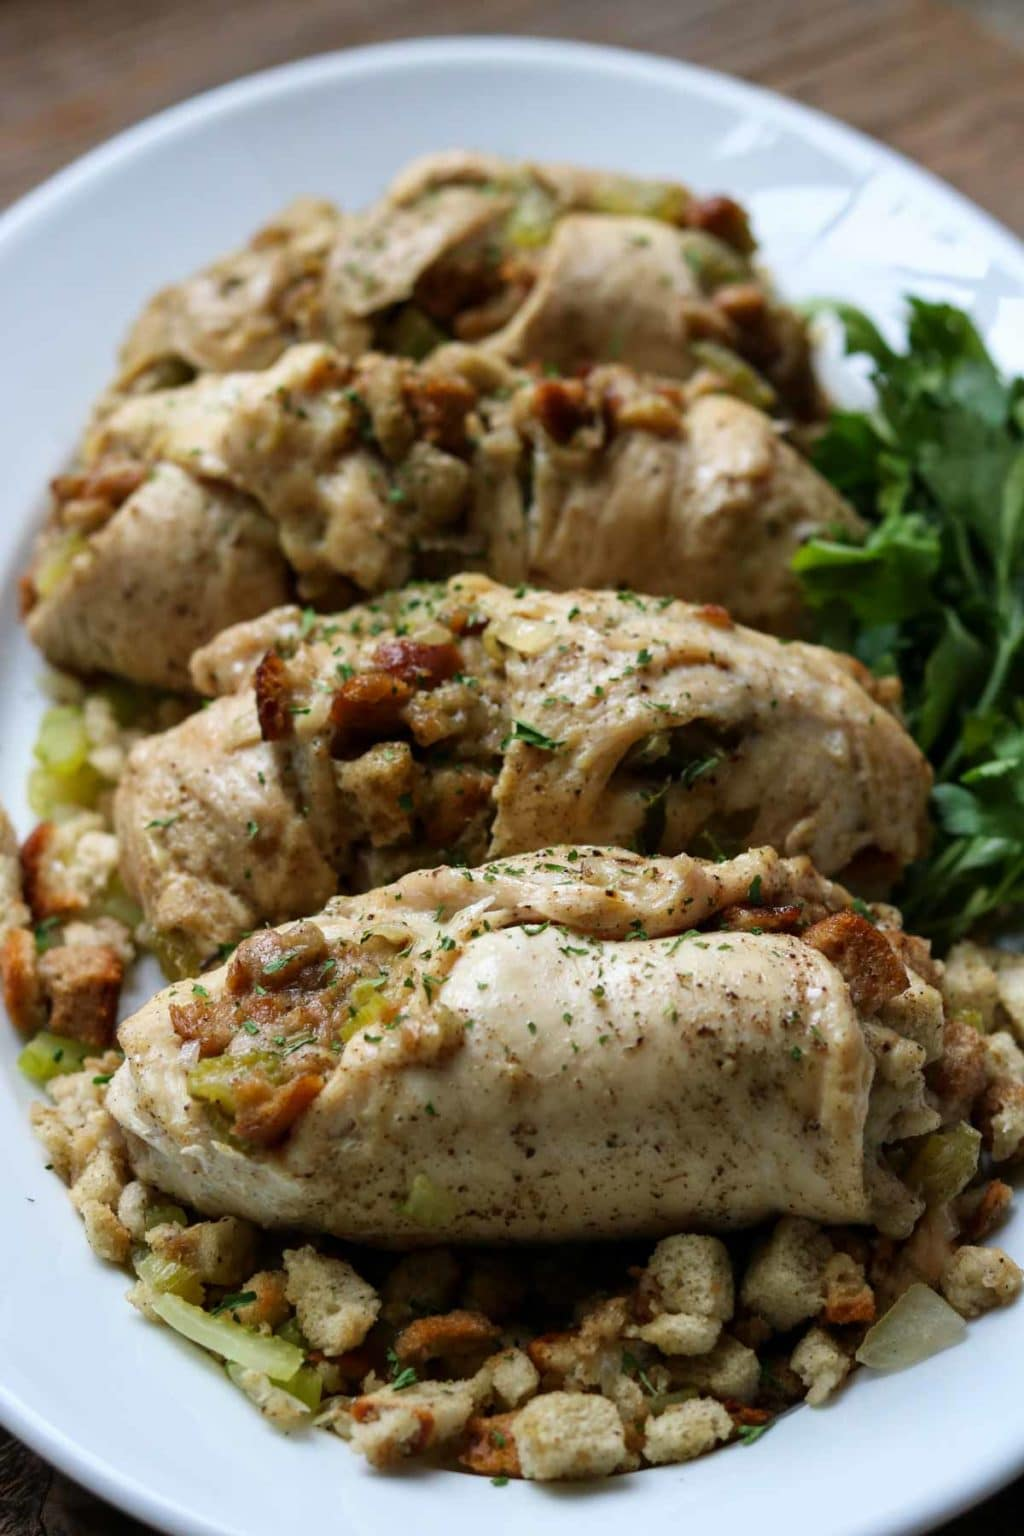 chicken with stuffing on a white oval plate garnished with parsley